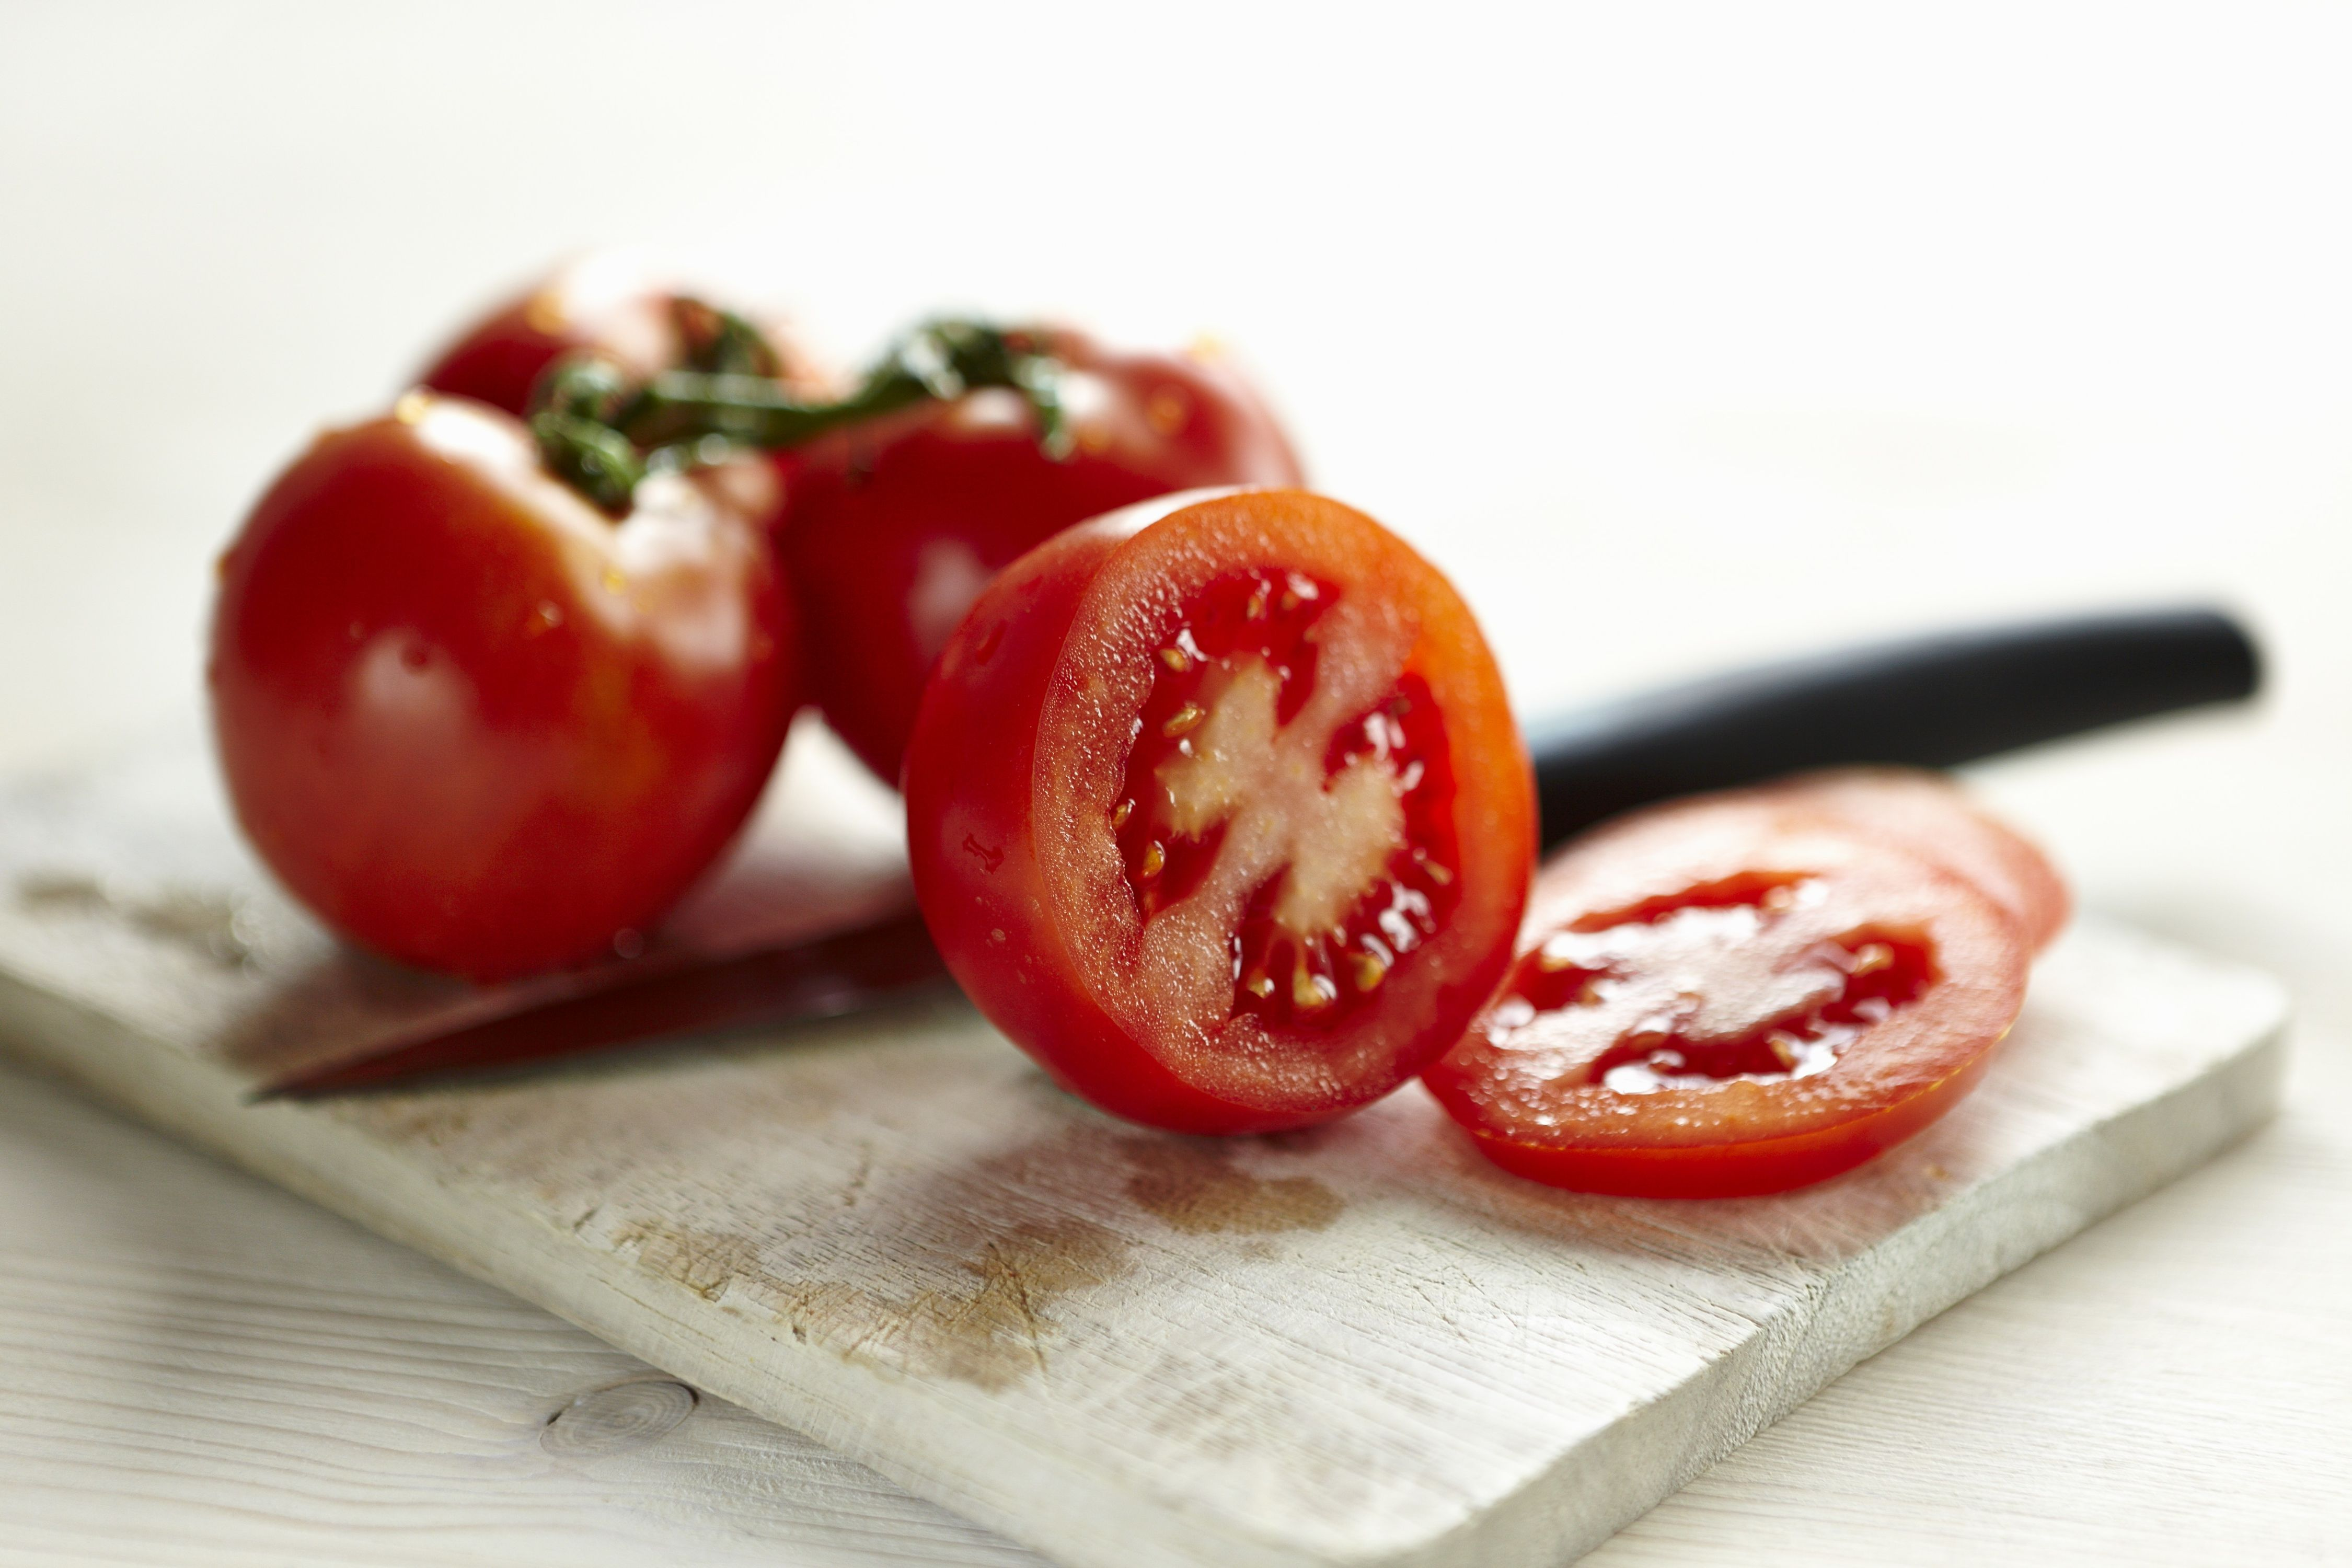 You Must Try This Condiment on Your Next Tomato Sandwich